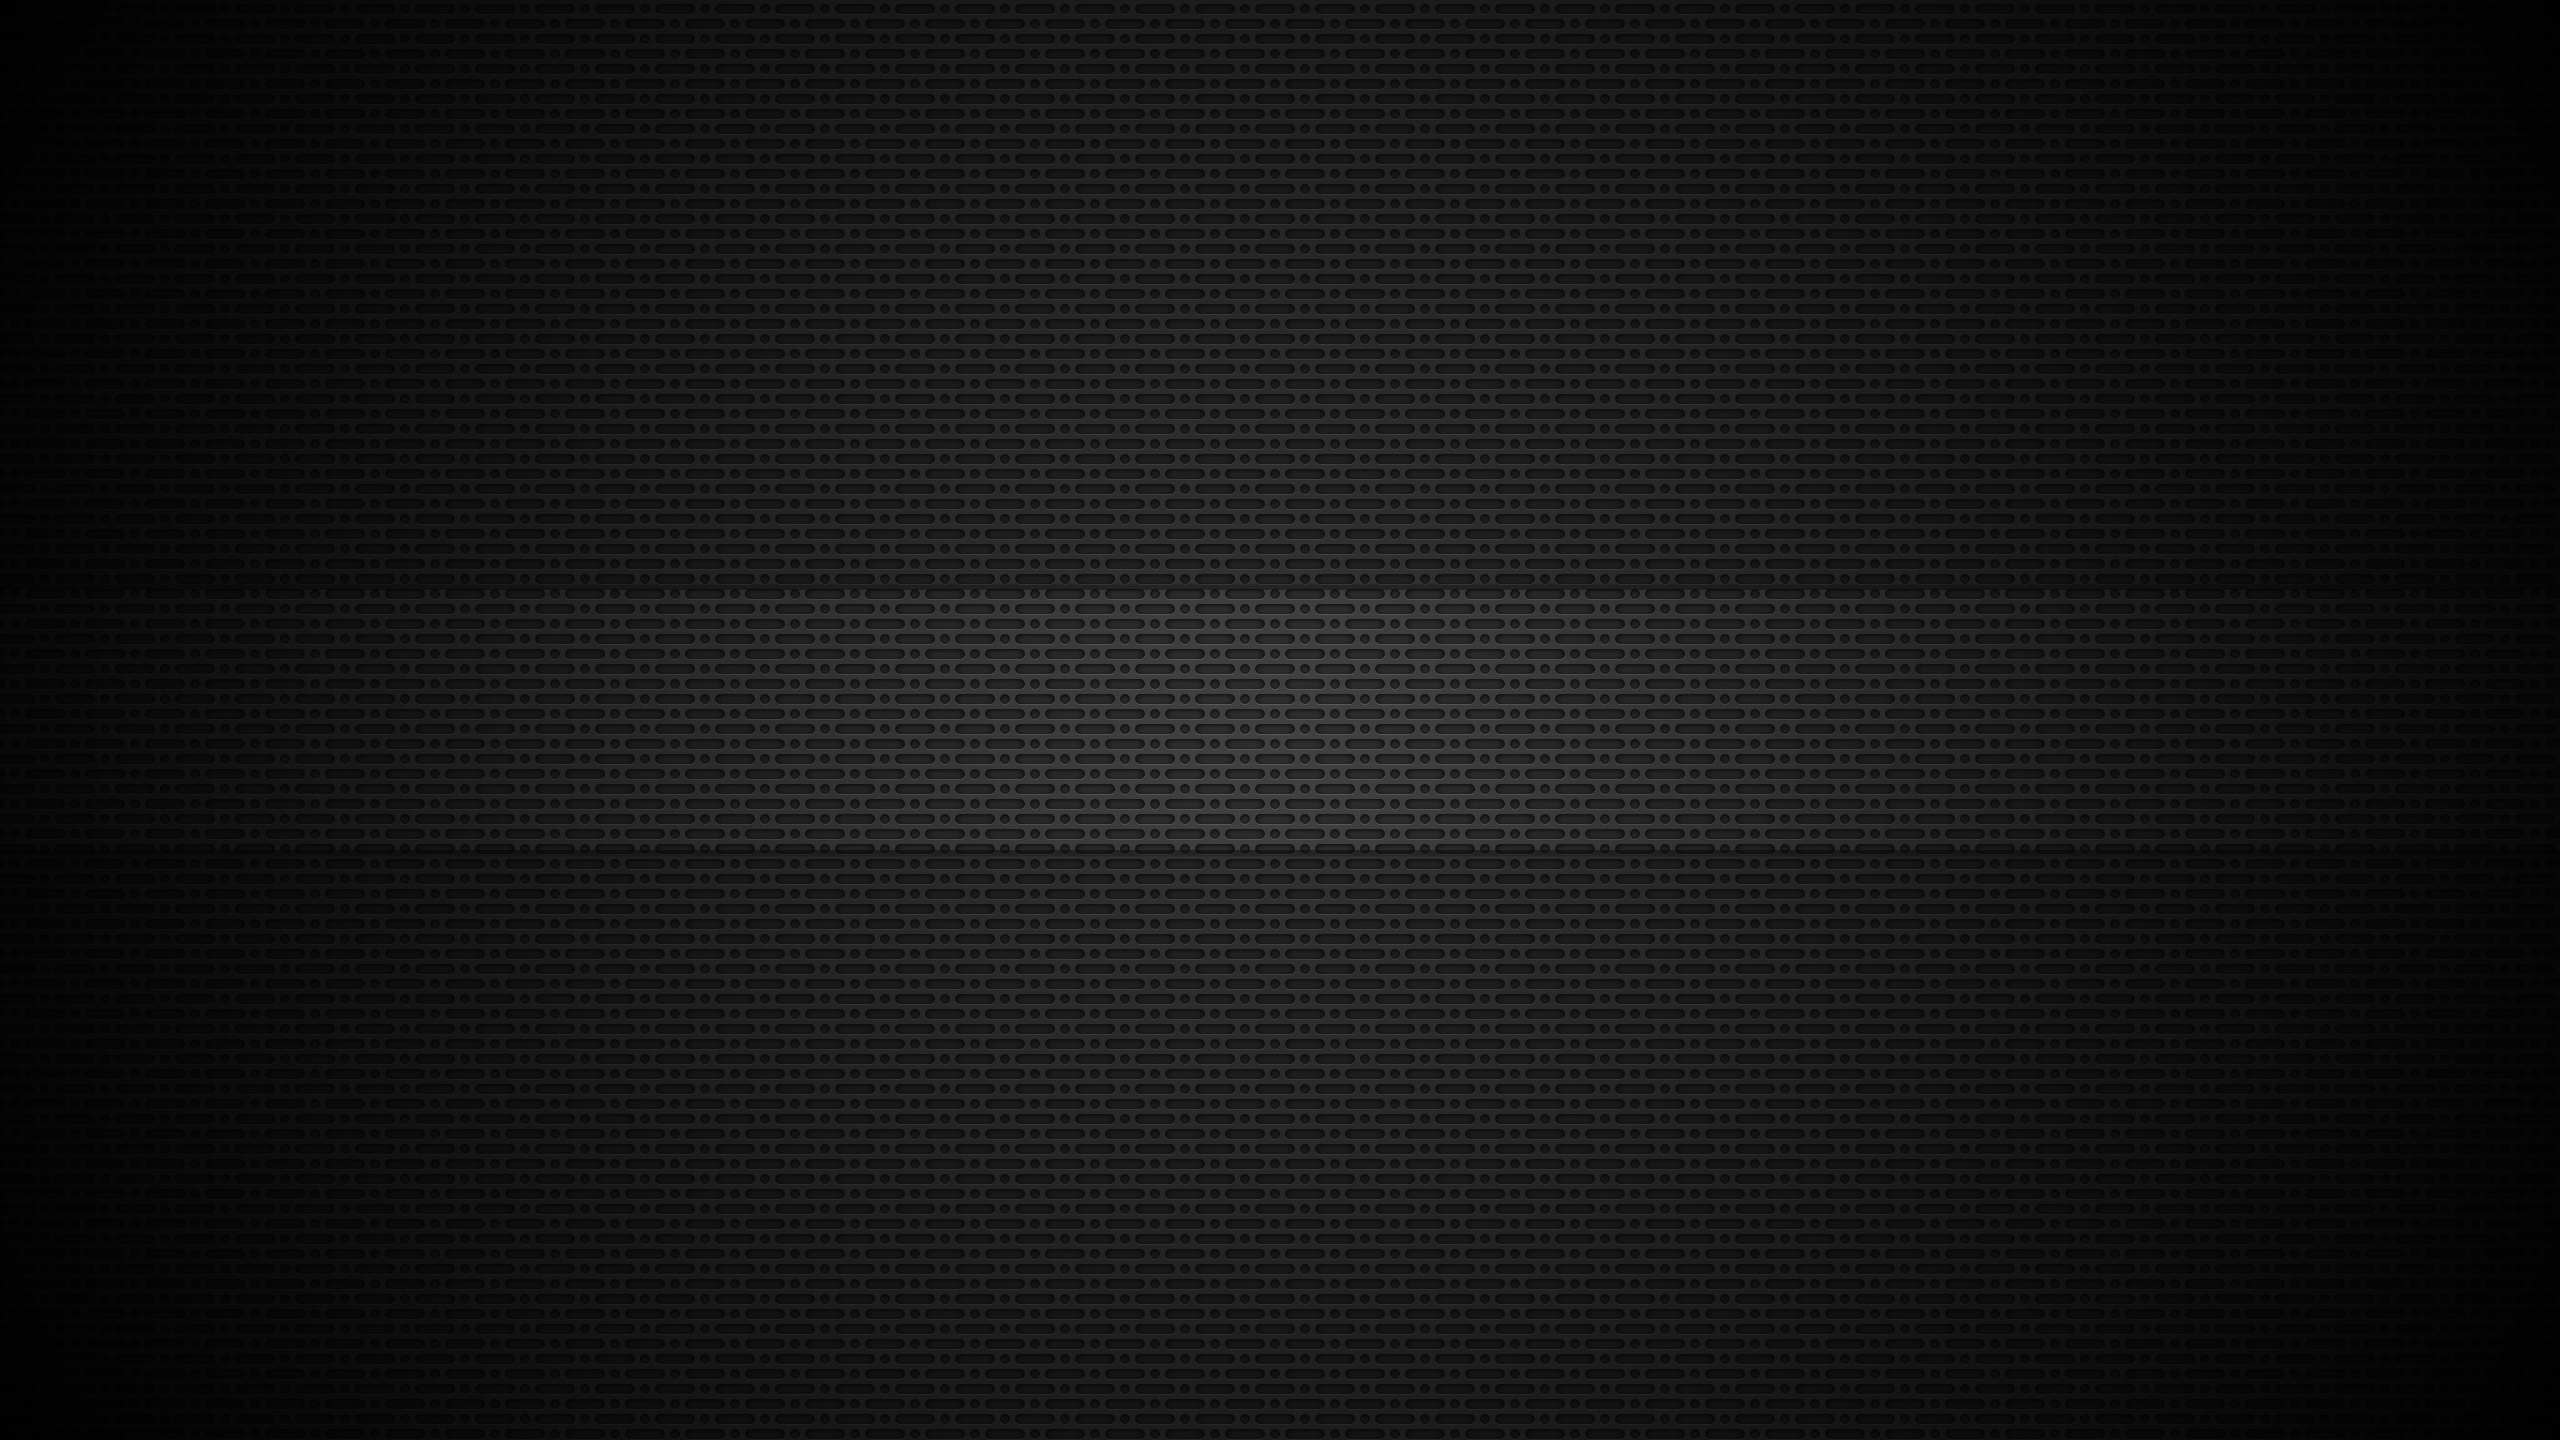 Displaying Images For   Youtube Backgrounds 2560x1440 2560x1440